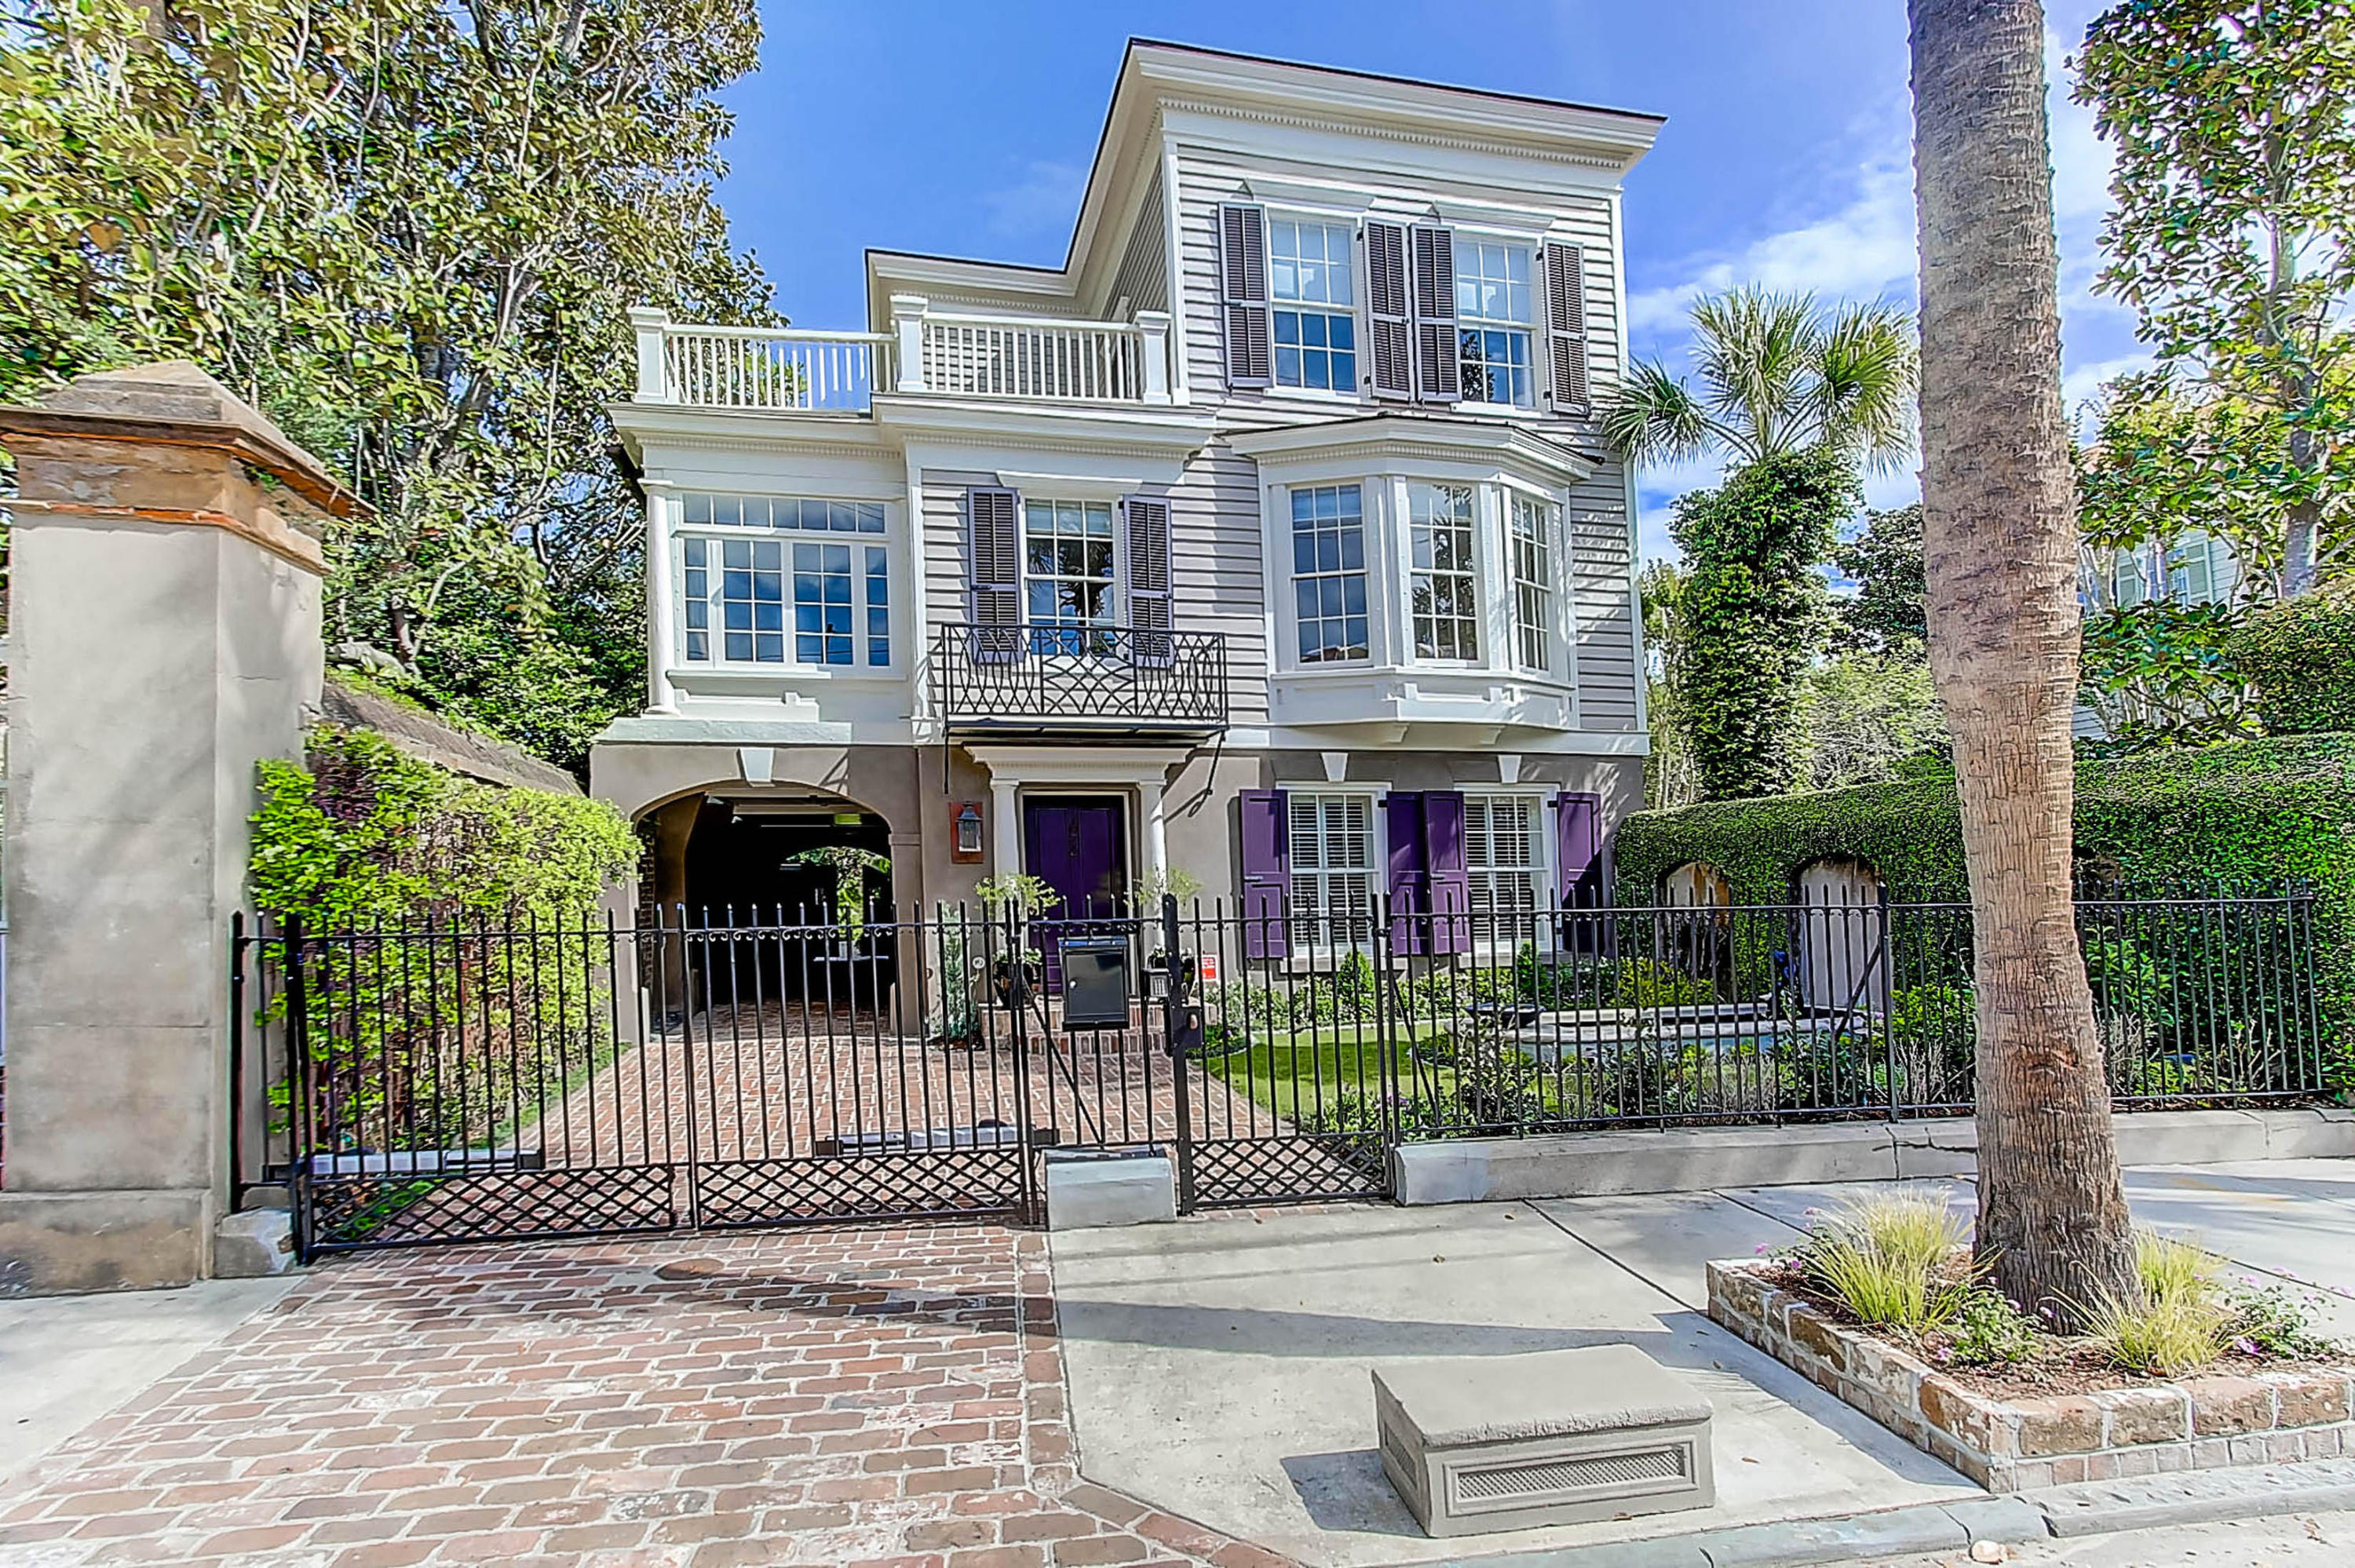 Home for sale 62 Battery , South Of Broad, Downtown Charleston, SC